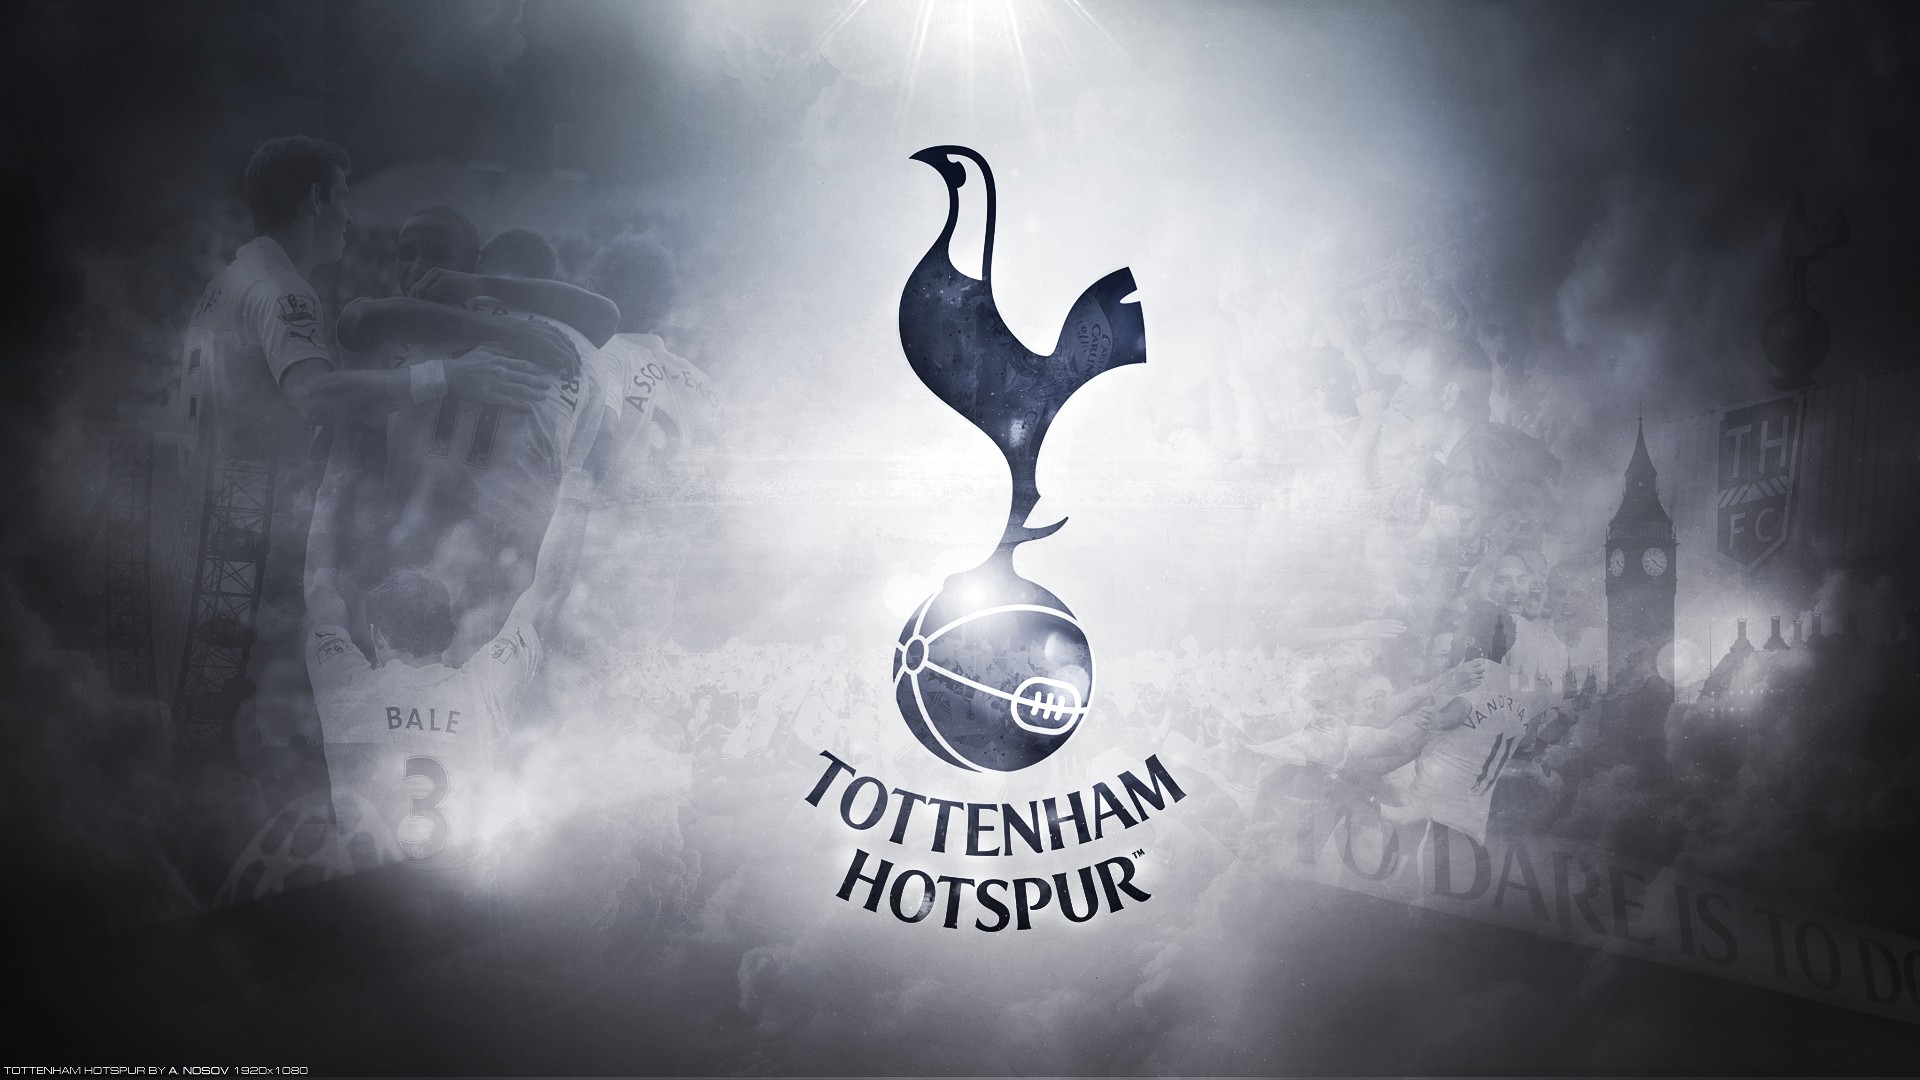 FC Football Logo HD Wallpaper Tottenham Hotspur FC Football Logo 1920x1080